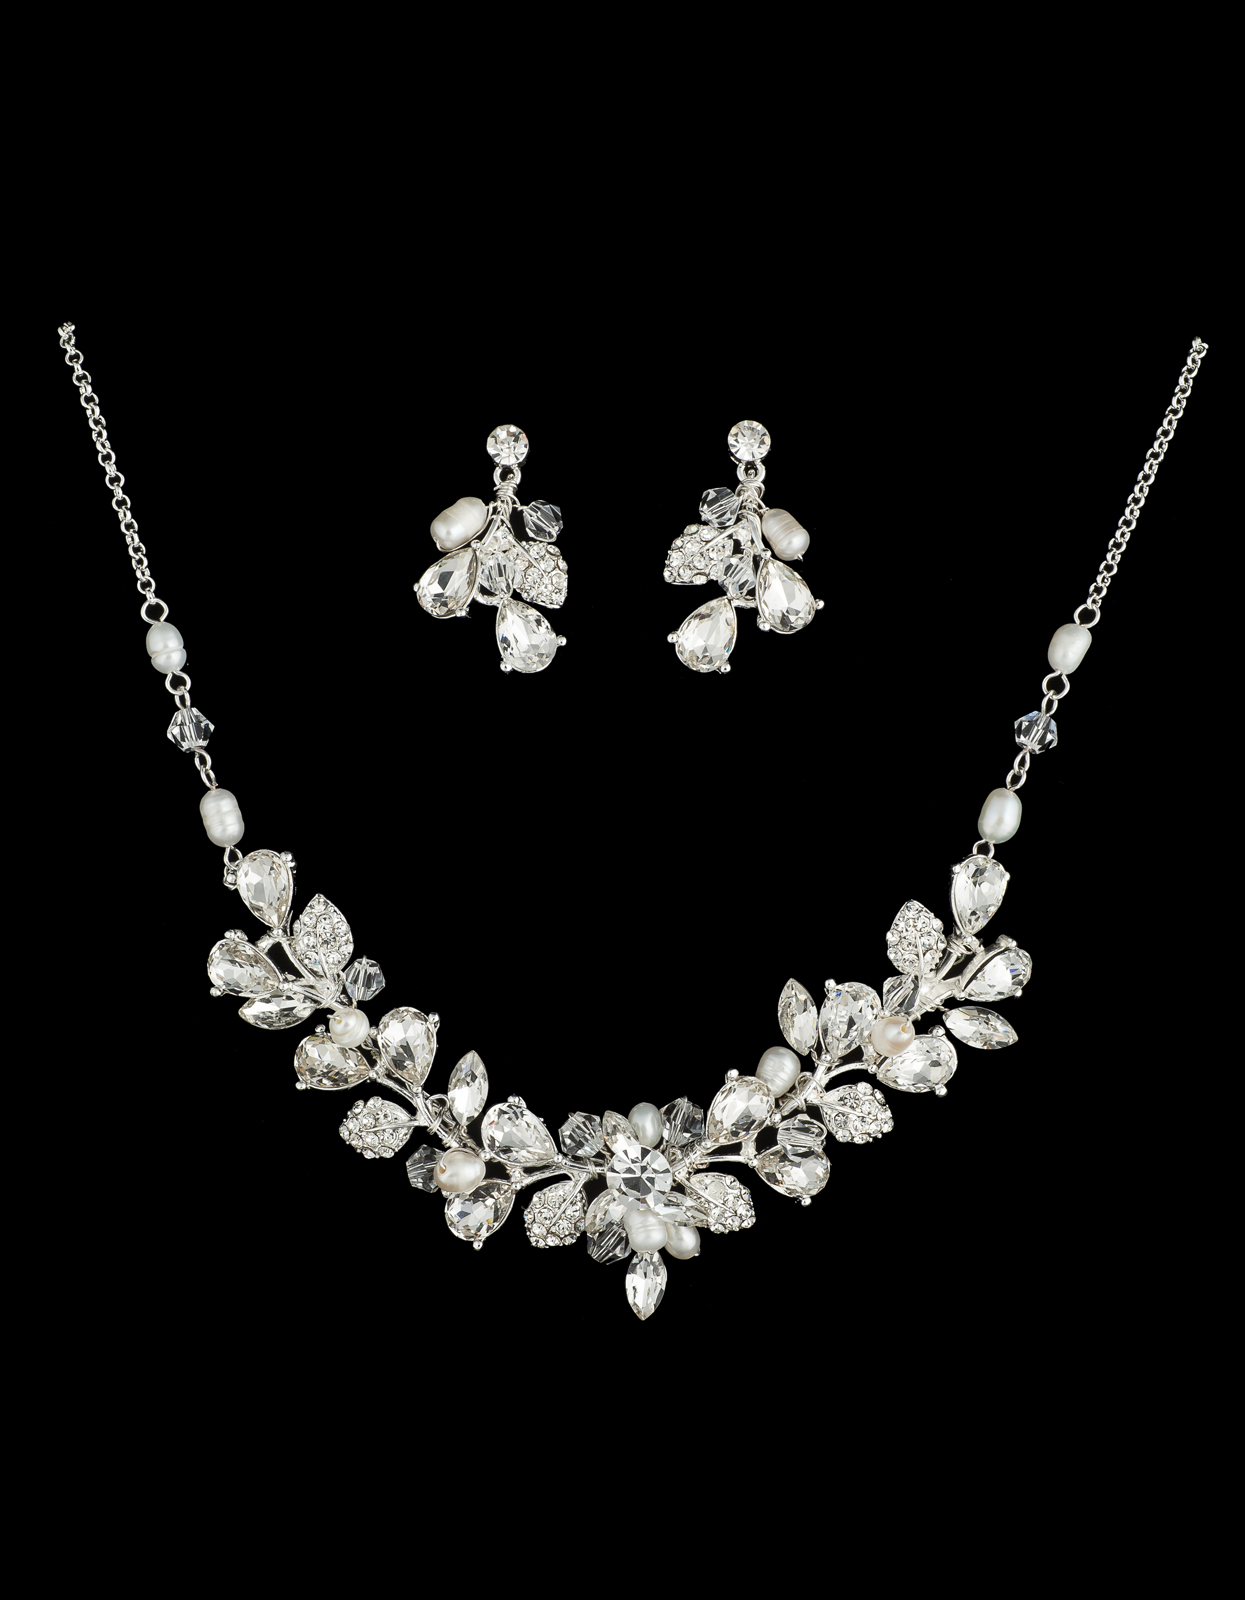 Bridal Classics Necklace Sets MJ-242